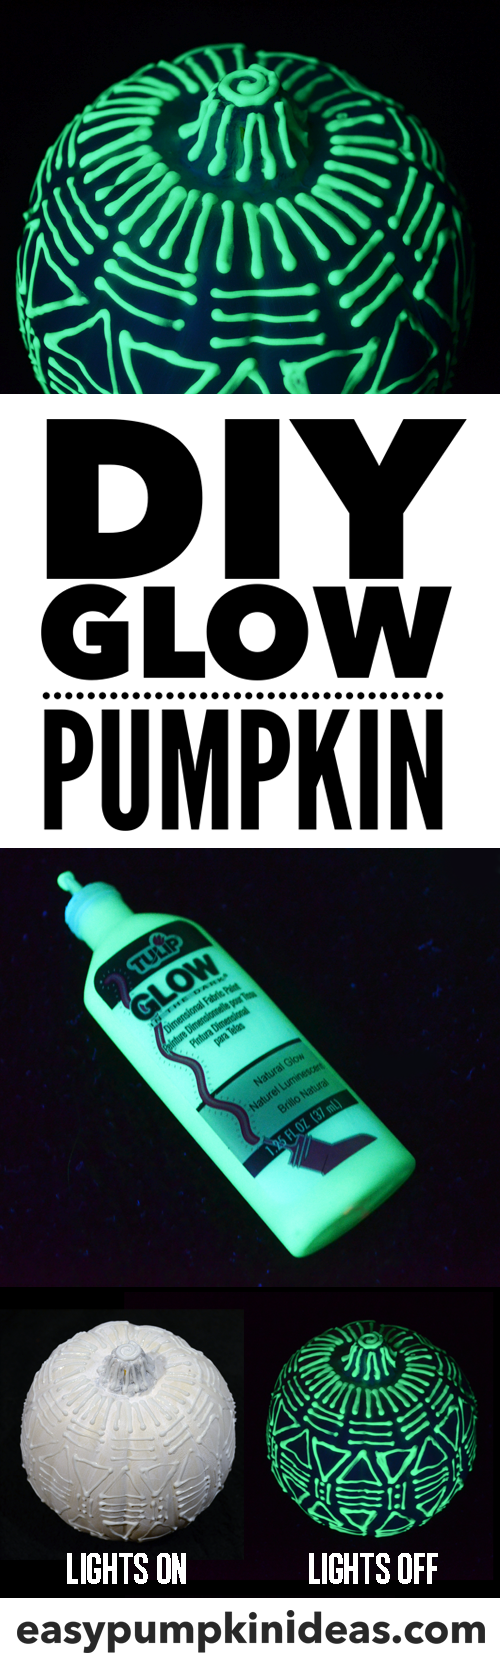 glow-in-the-dark-pumpkin-idea-diy-craft